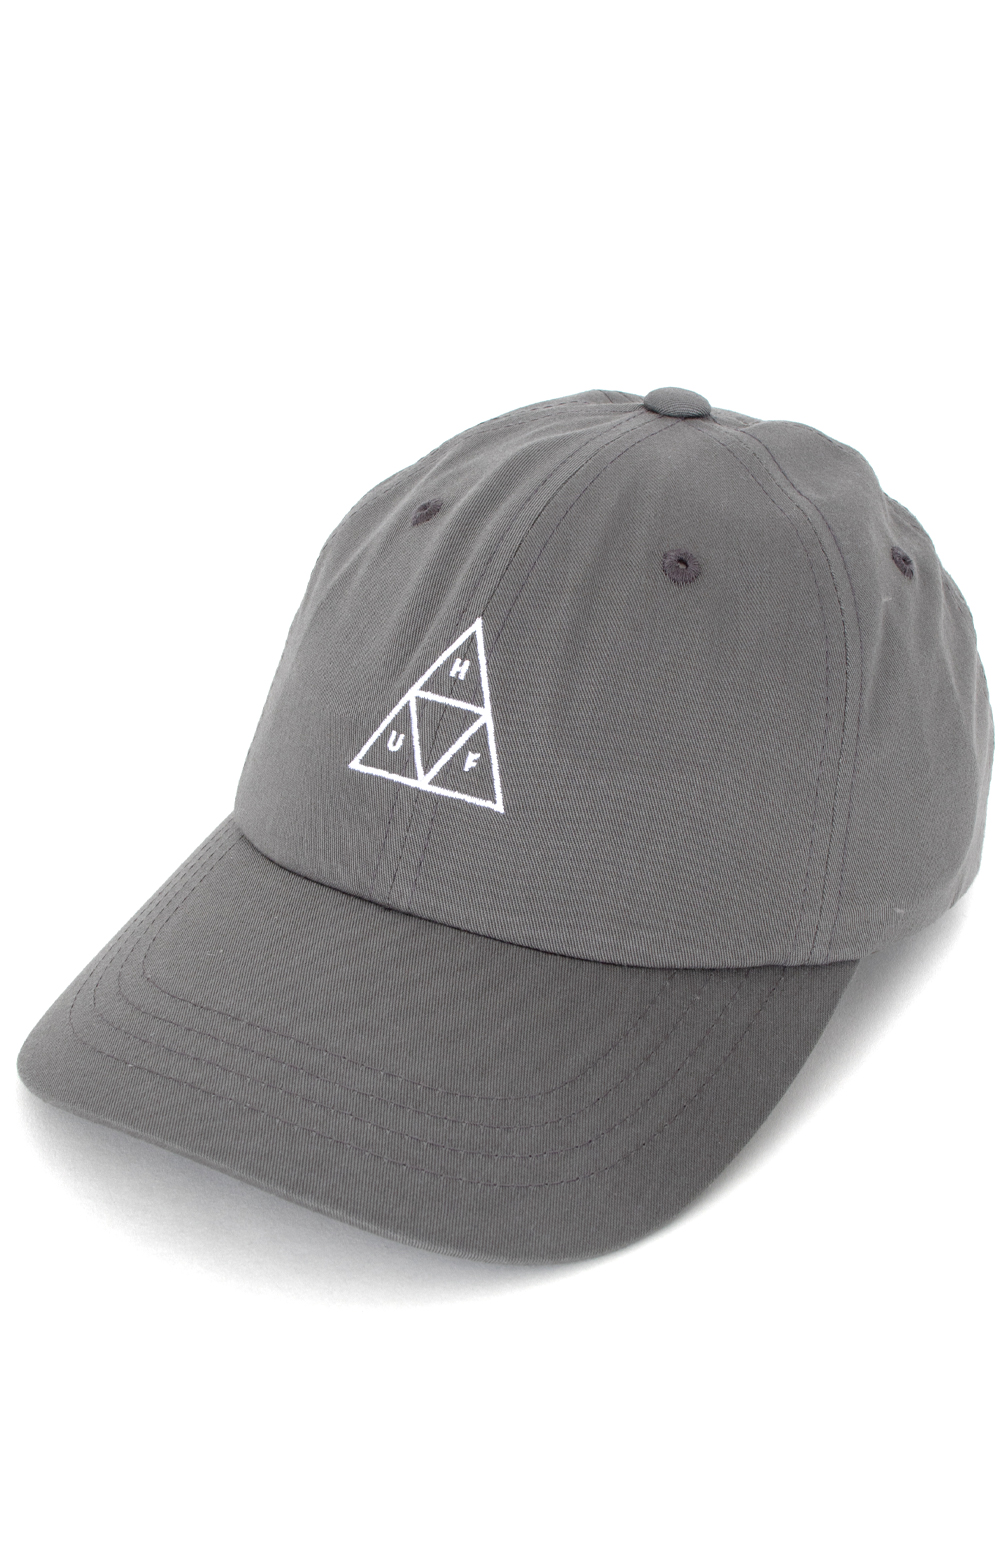 Triple Triangle Dad Hat - Charcoal